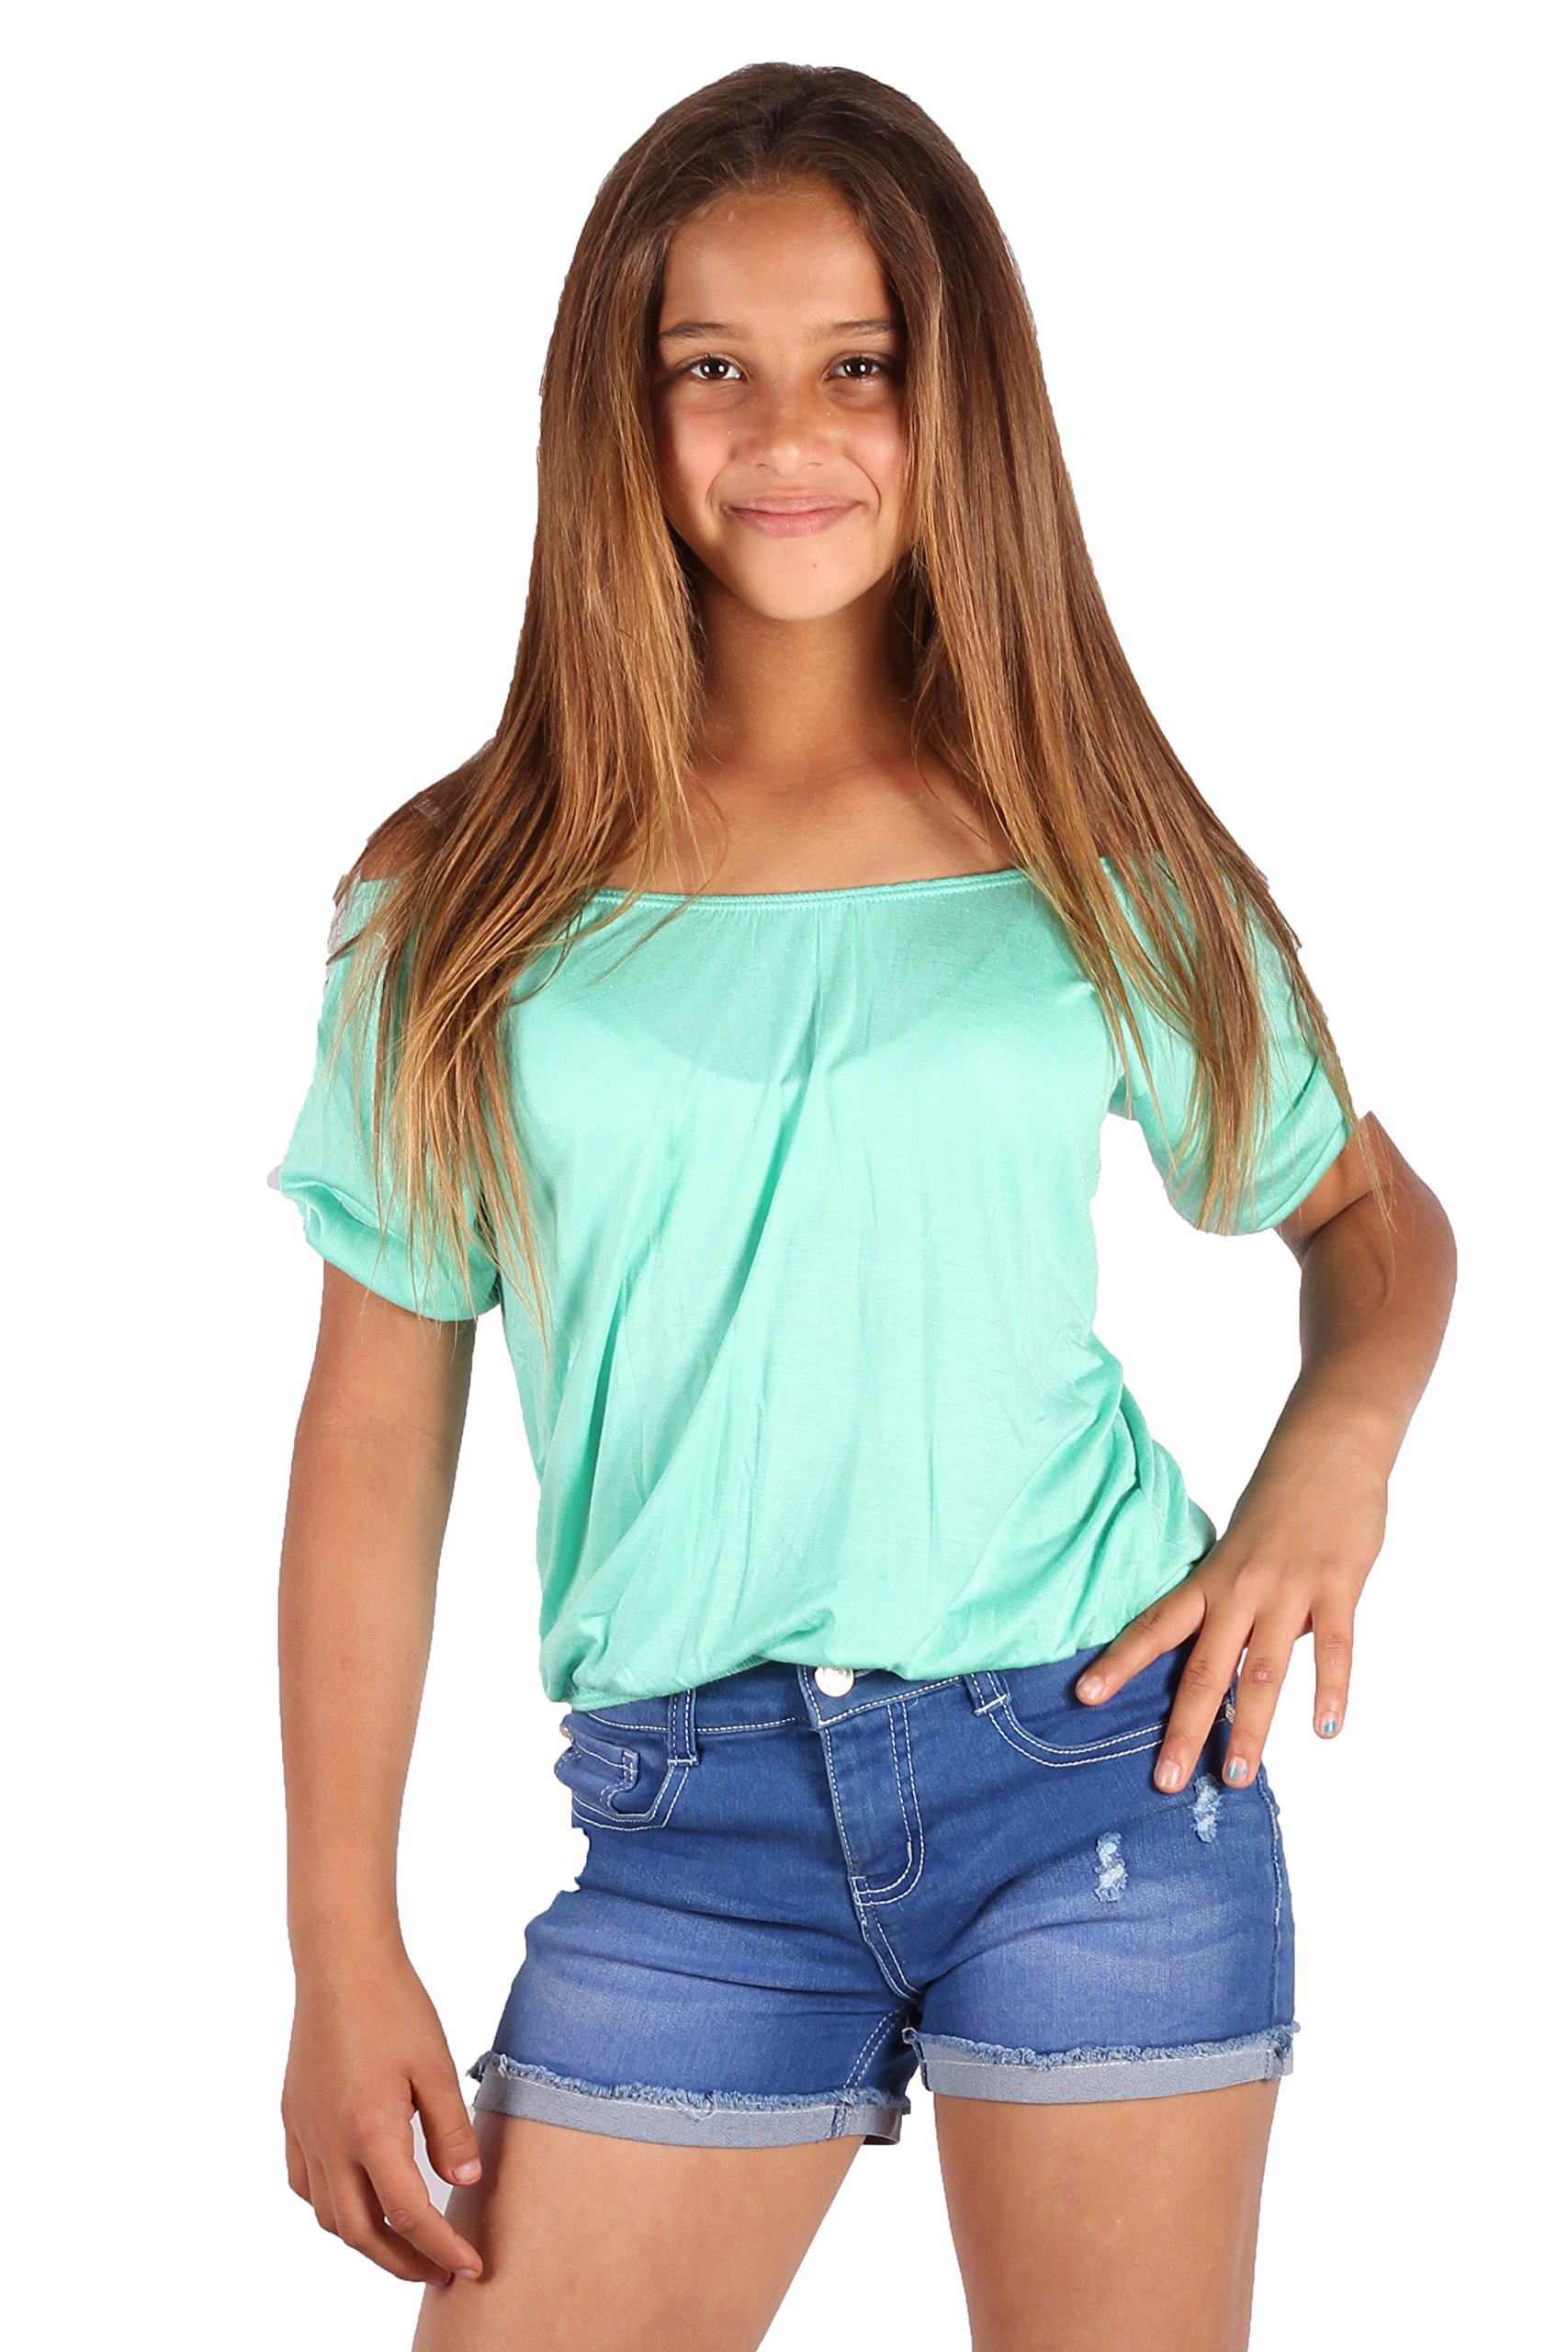 Lori&Jane Short Sleeve Top Loose Fit Top for Girls Gathered Off Shoulder - Made in USA (Mint, 14)